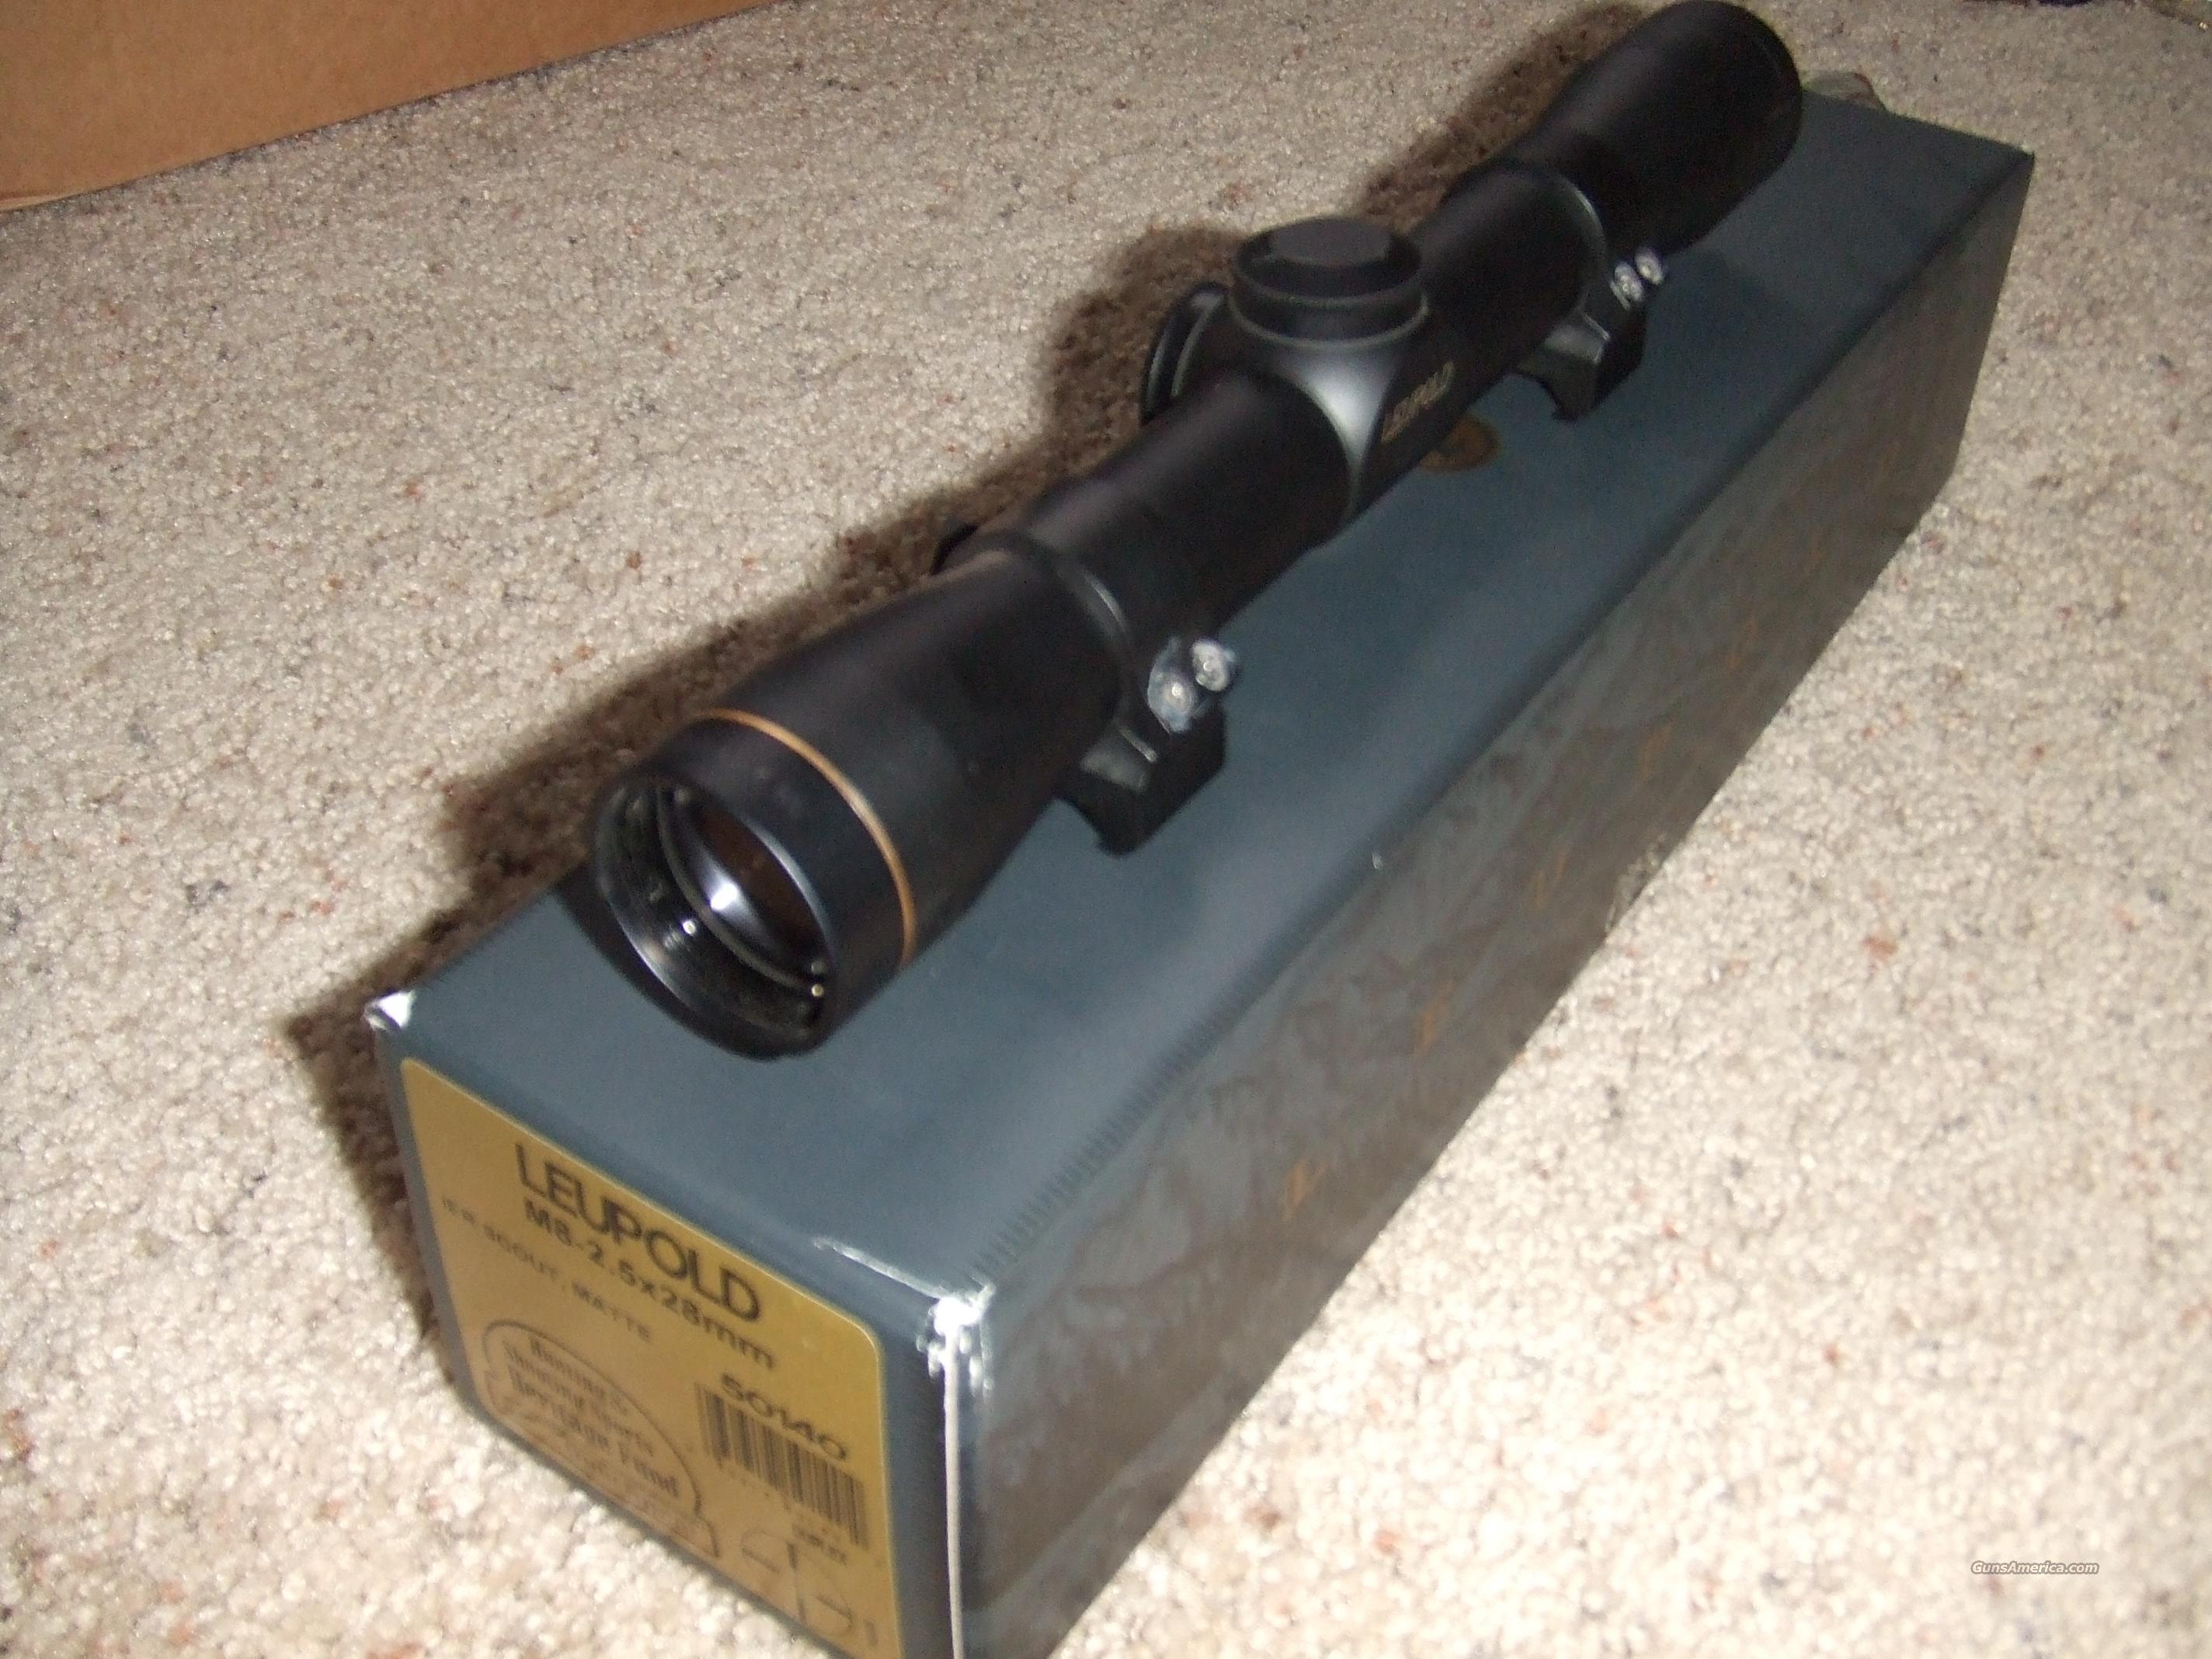 Leupold Scout Scope M8 2.5x28   Non-Guns > Scopes/Mounts/Rings & Optics > Rifle Scopes > Fixed Focal Length